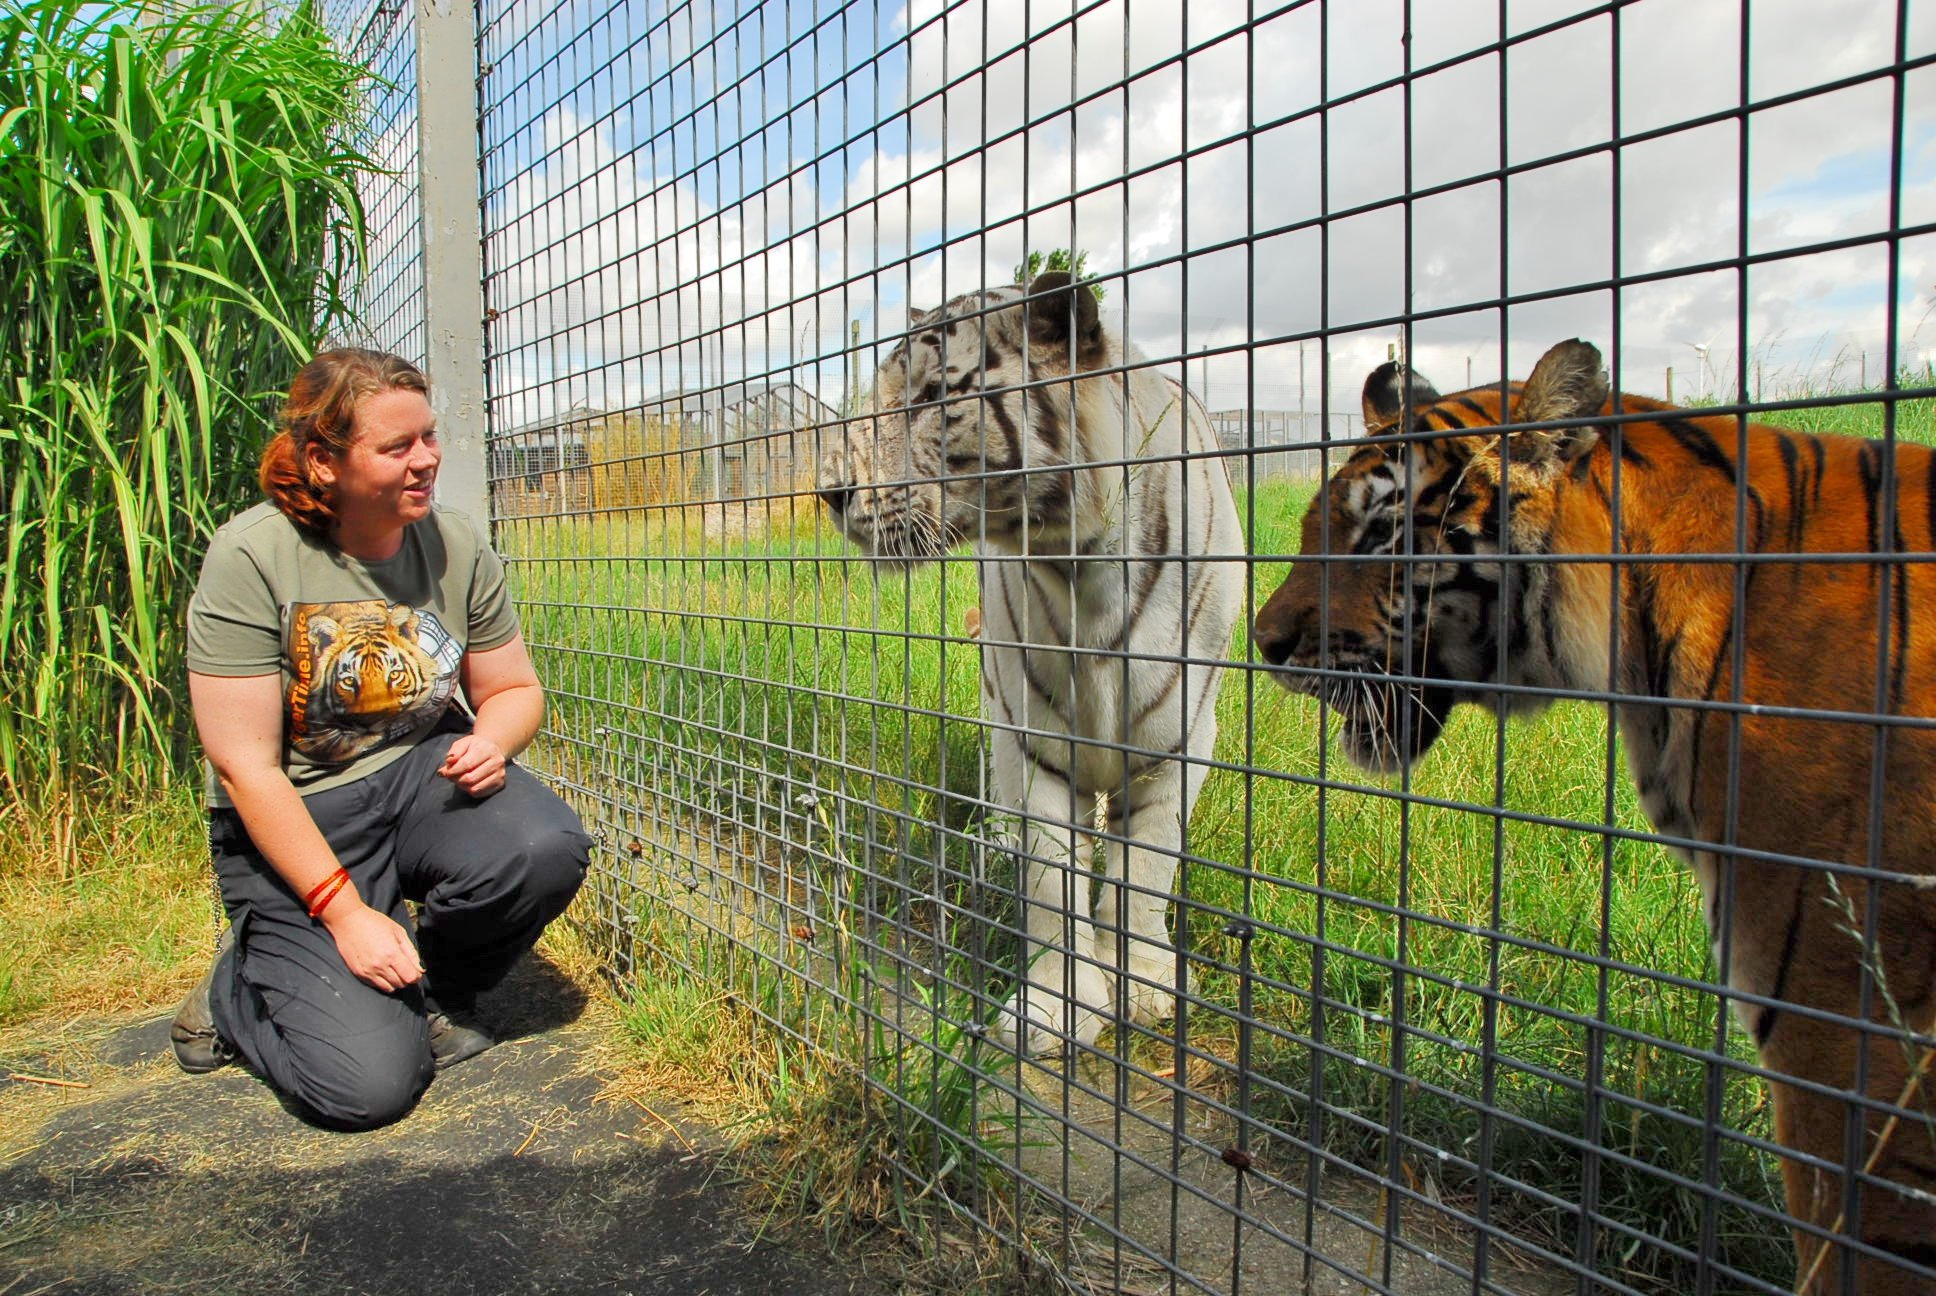 Campaign launched to stop Hamerton Zoo from putting down tiger that killed keeper